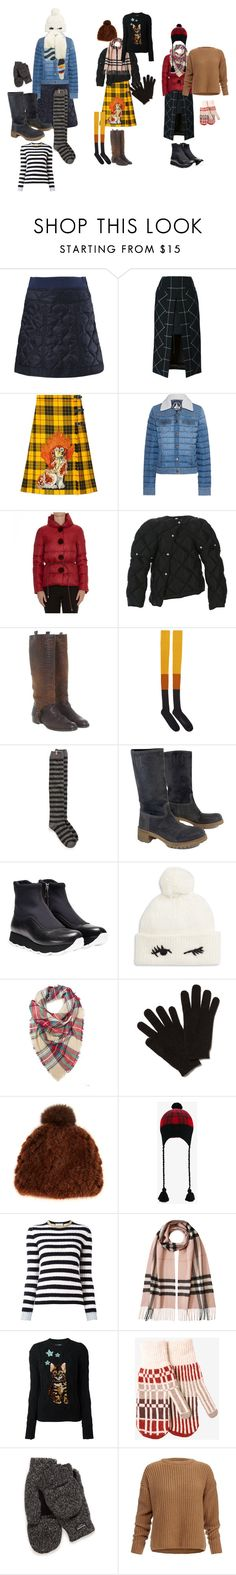 """""""How to wear down jacket 2"""" by helen-alexandrov on Polyvore featuring мода, Diesel, Sacai, Gucci, JOTT, Ermanno Scervino, Acne Studios, Henry Beguelin, STELLA McCARTNEY и Hunter"""